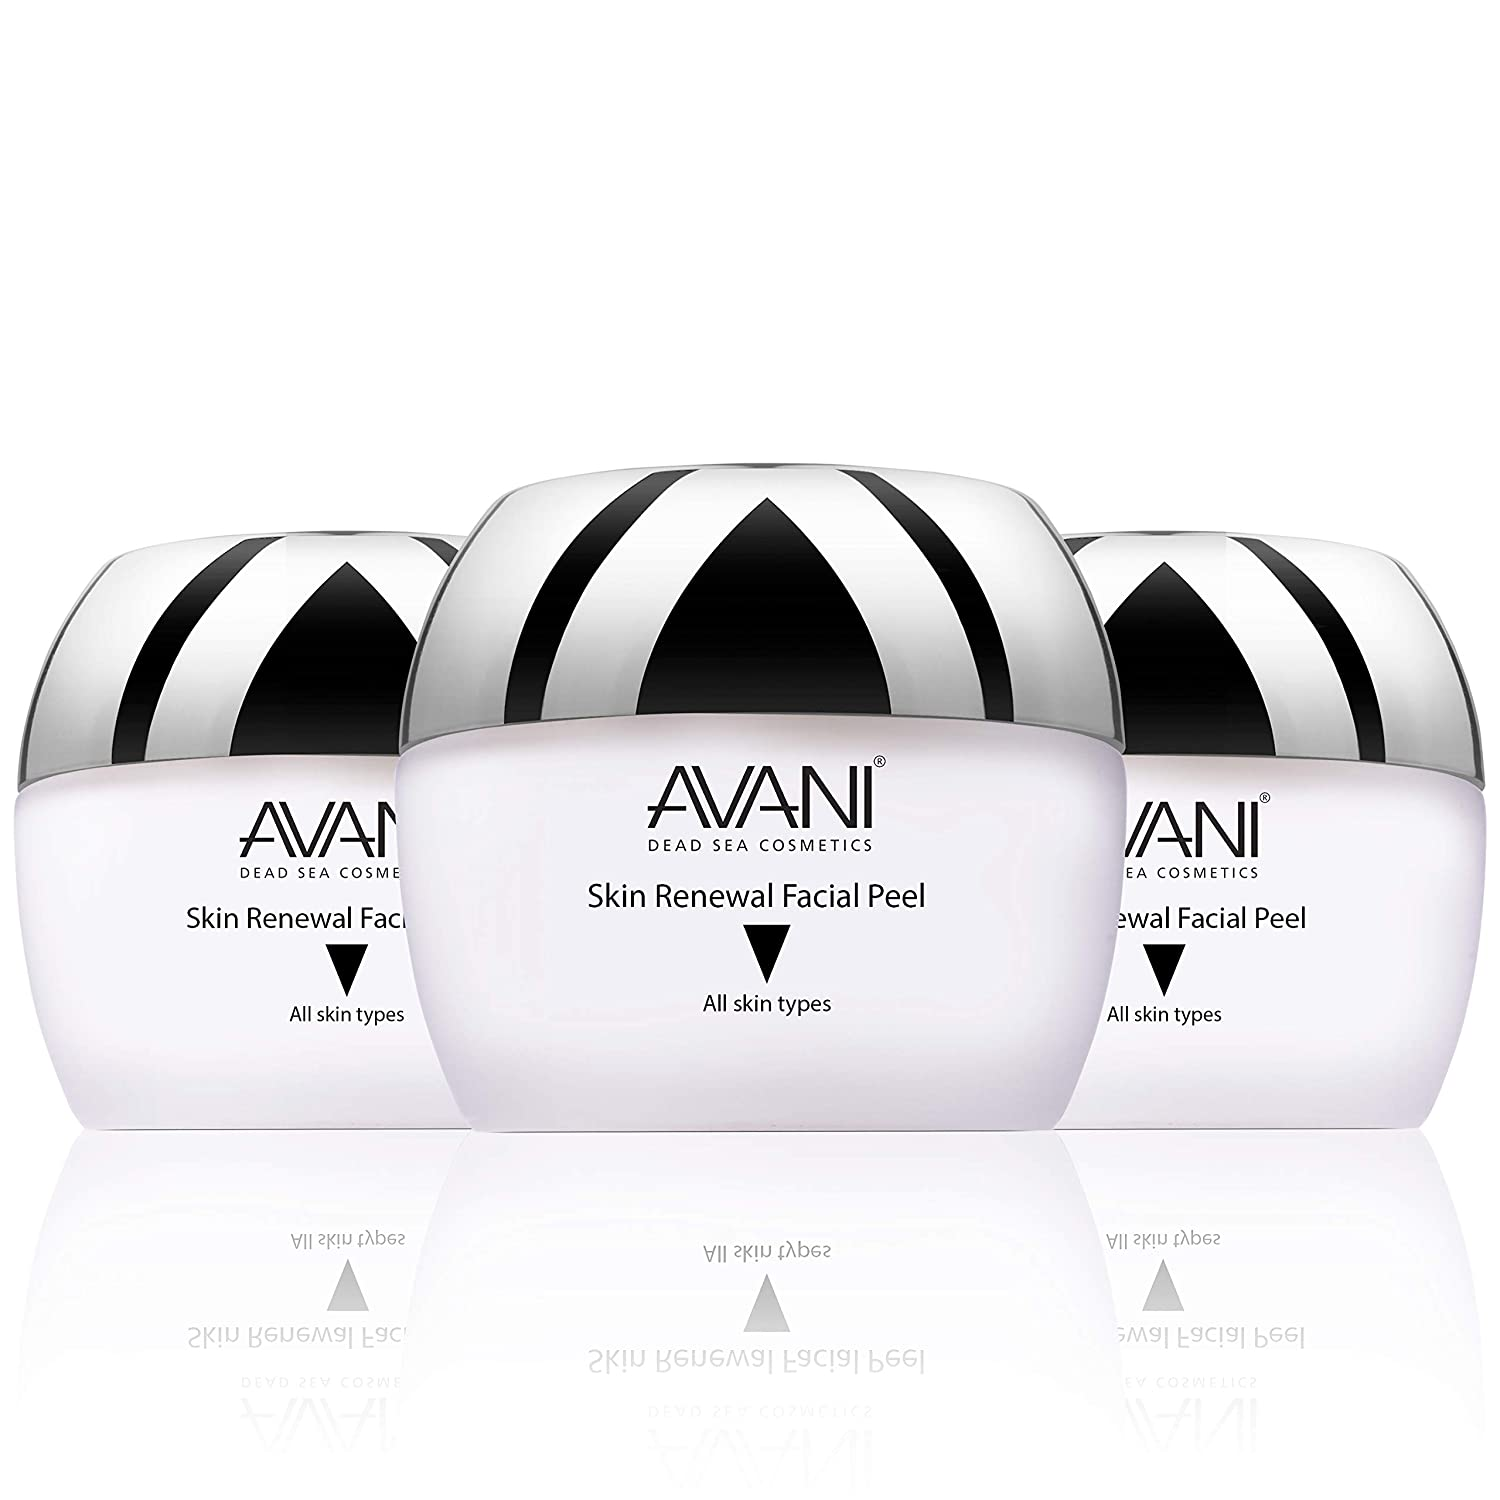 AVANI Classics Skin Renewal Facial Peel | Enriched with Vitamins E & C | Infused with Dead Sea Minerals - 1.7 fl. oz. (3-pack)